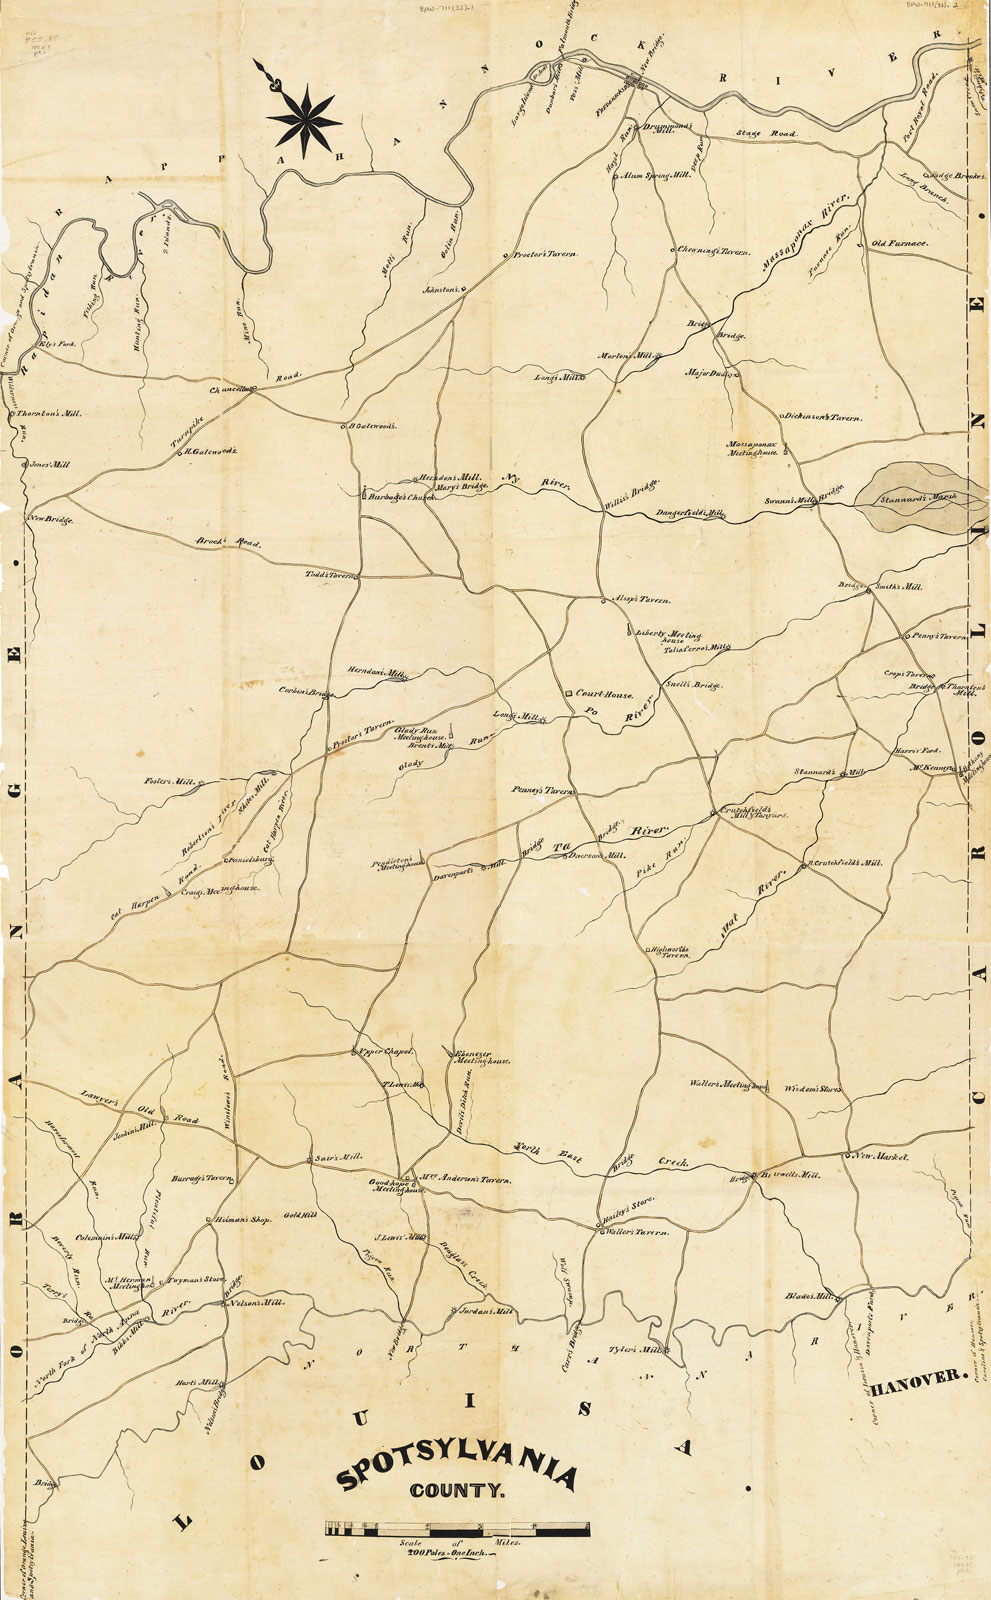 Spotsylvania County Map c.1820